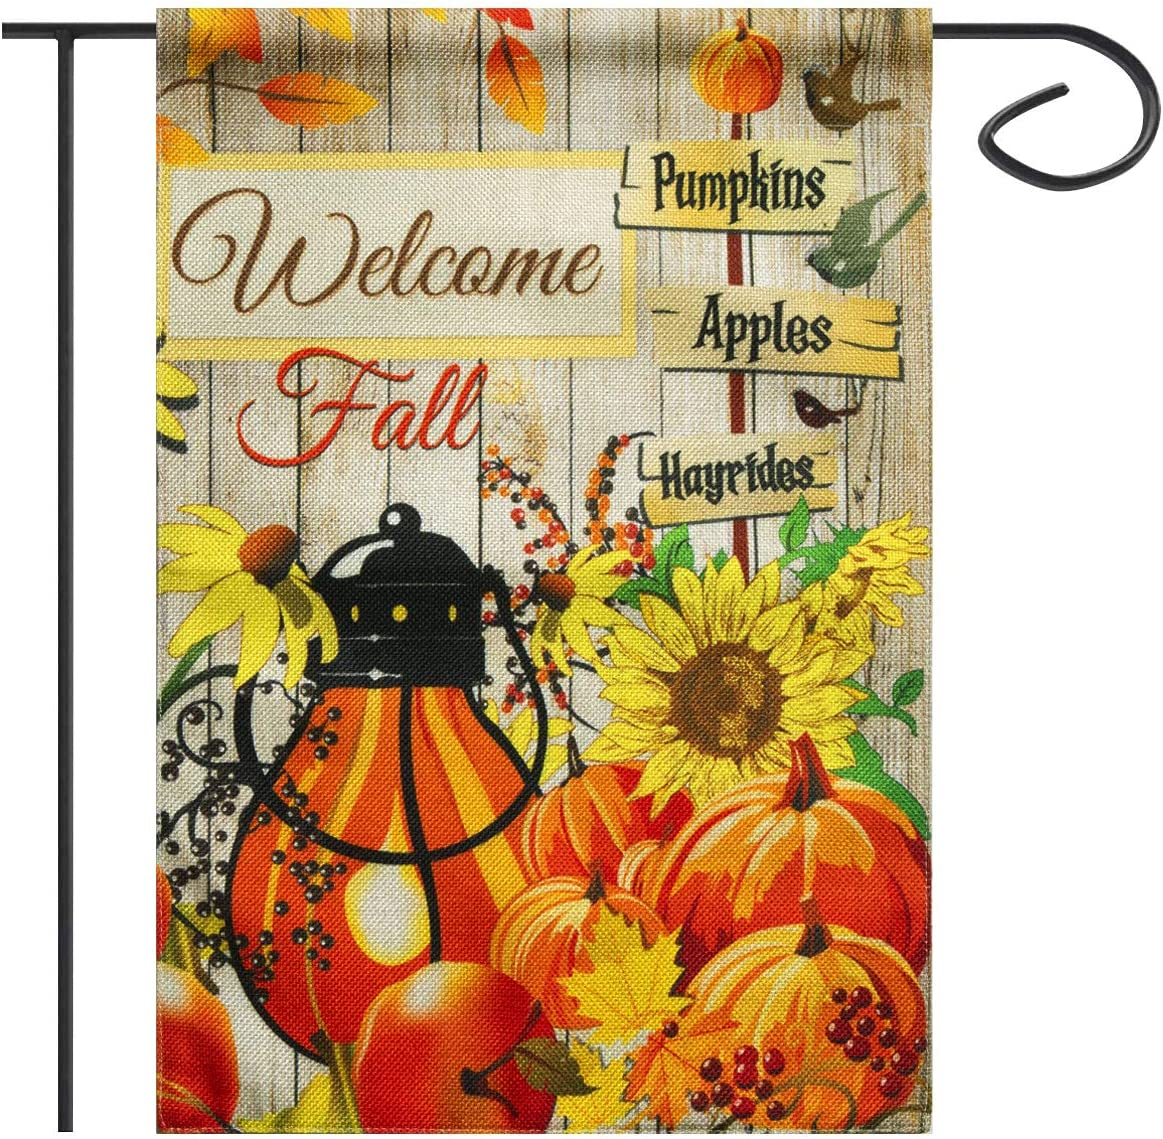 Fall Garden Flag Halloween Welcome 12 x 18 Inch Double Sided Burlap Pumpkins Hayrides, Autumn Halloween Flags Outdoors Decorative for Home Garden Yard